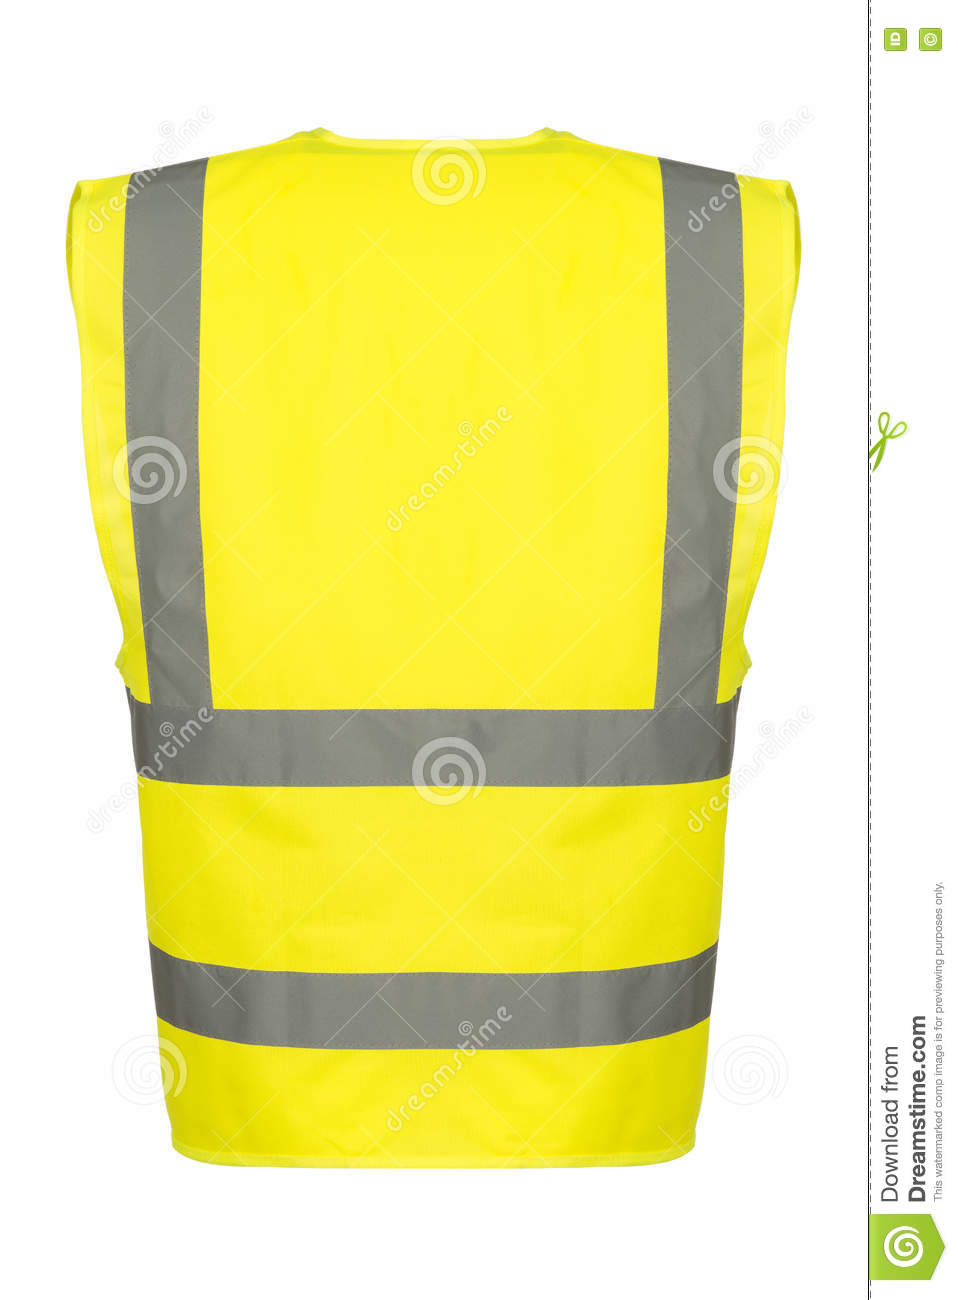 Cutout of Rear of Yellow Safety Vest